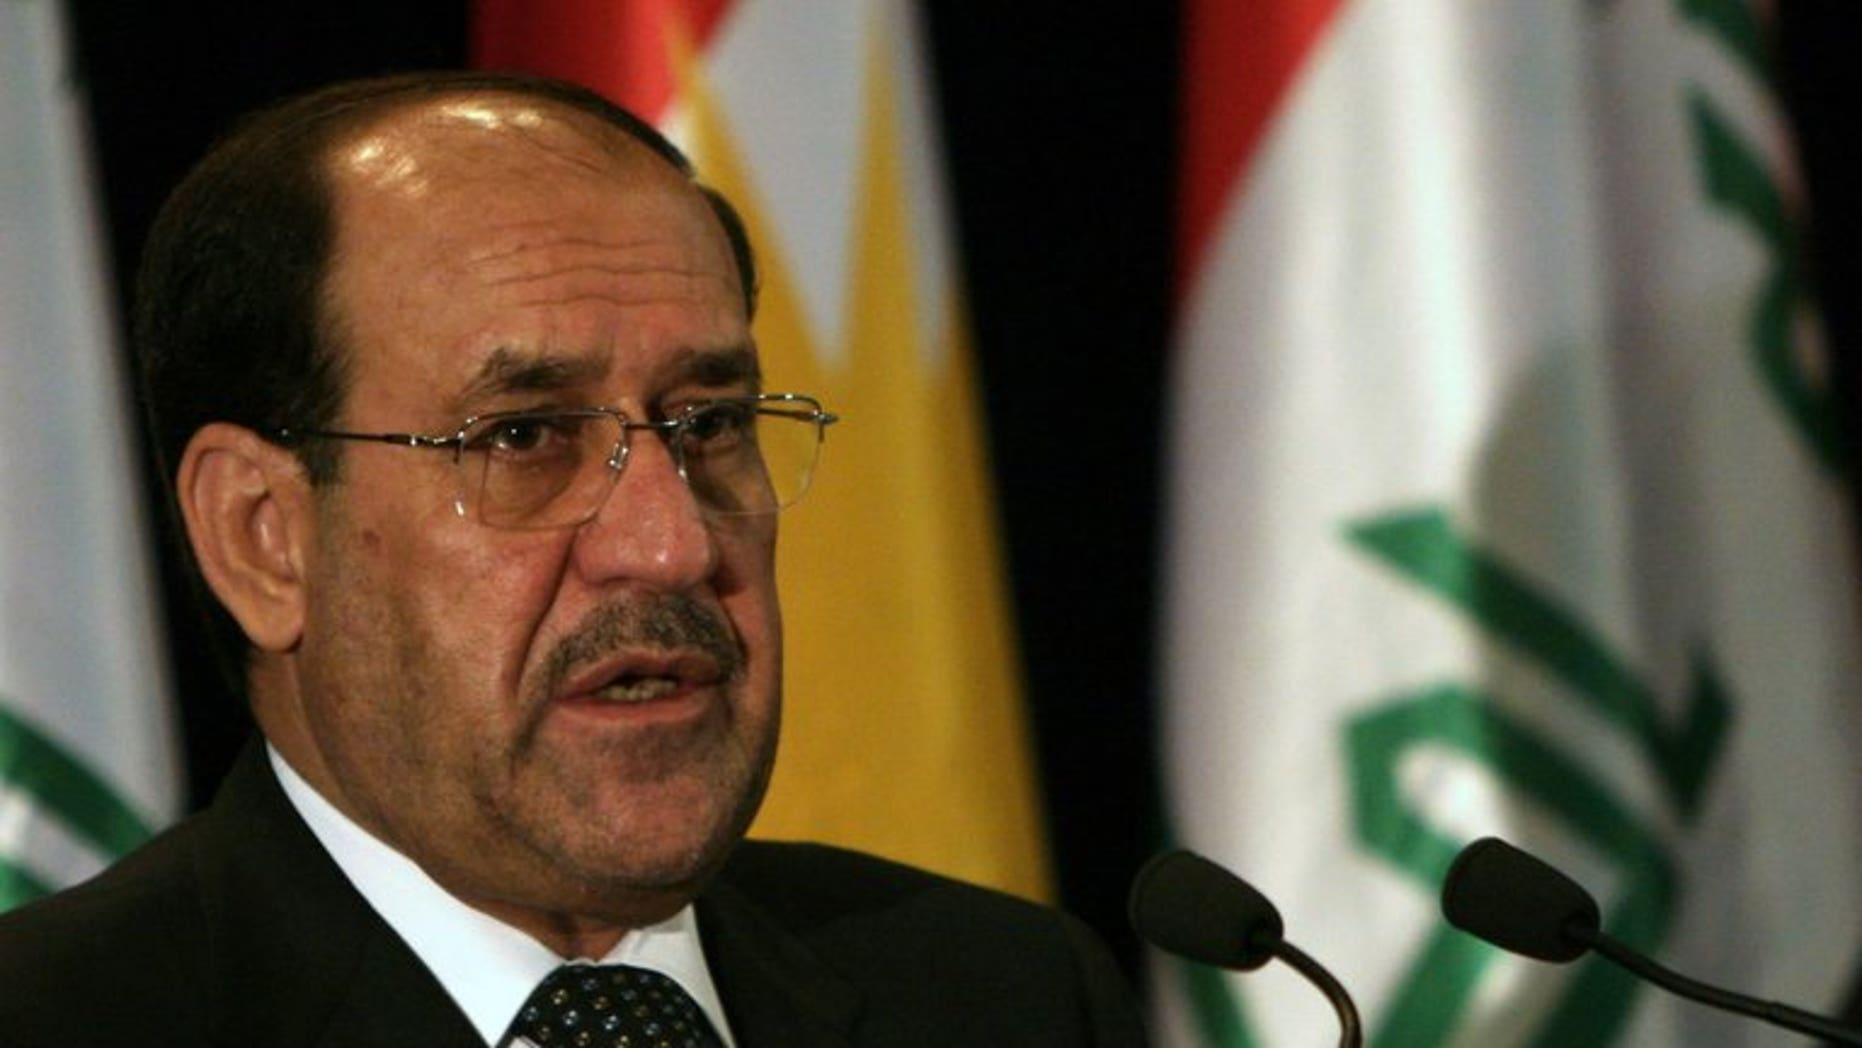 Iraqi Prime Minister Nuri al-Maliki speaks during a joint press conference in Arbil, on June 9, 2013. Maliki has held talks in Moscow with the Russian oil company Lukoil about enacting an existing energy contract and possible participation in future deals, Lukoil said.